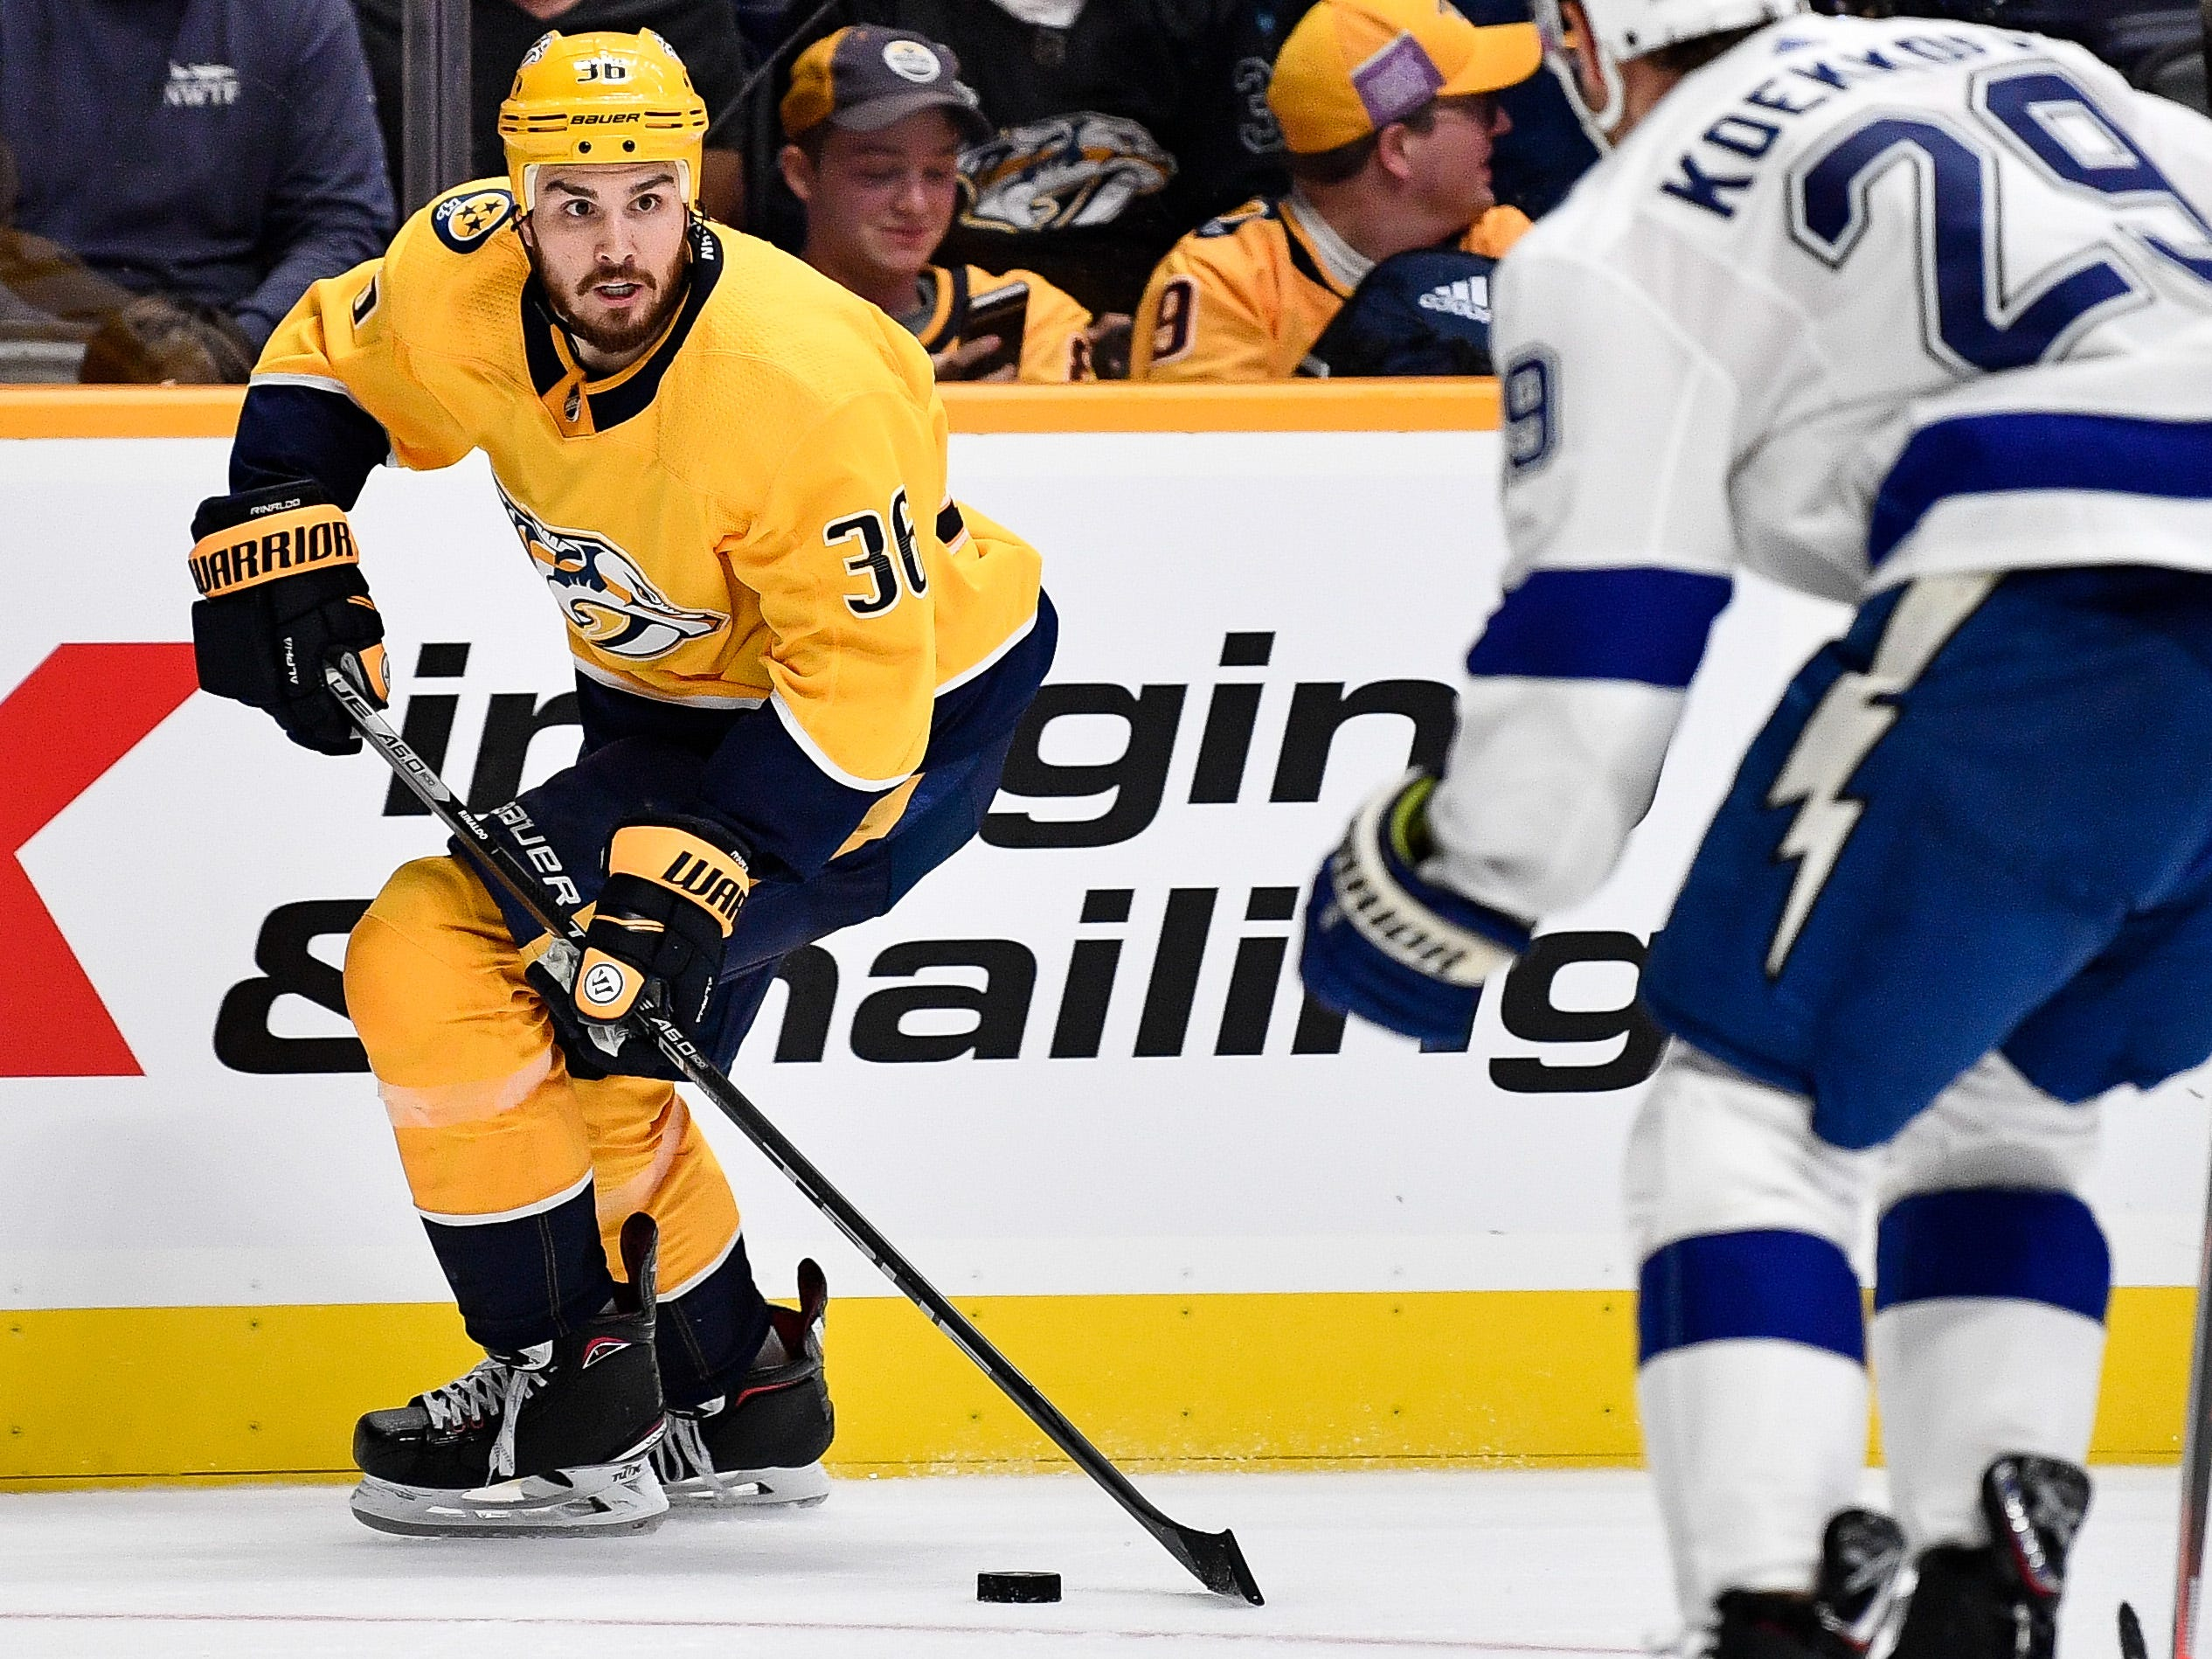 #36, Zac Rinaldo, Forward - Nashville Predators forward Zac Rinaldo (36) advances against the Tampa Bay Lightning during the third period at Bridgestone Arena in Nashville, Tenn., Friday, Sept. 21, 2018.